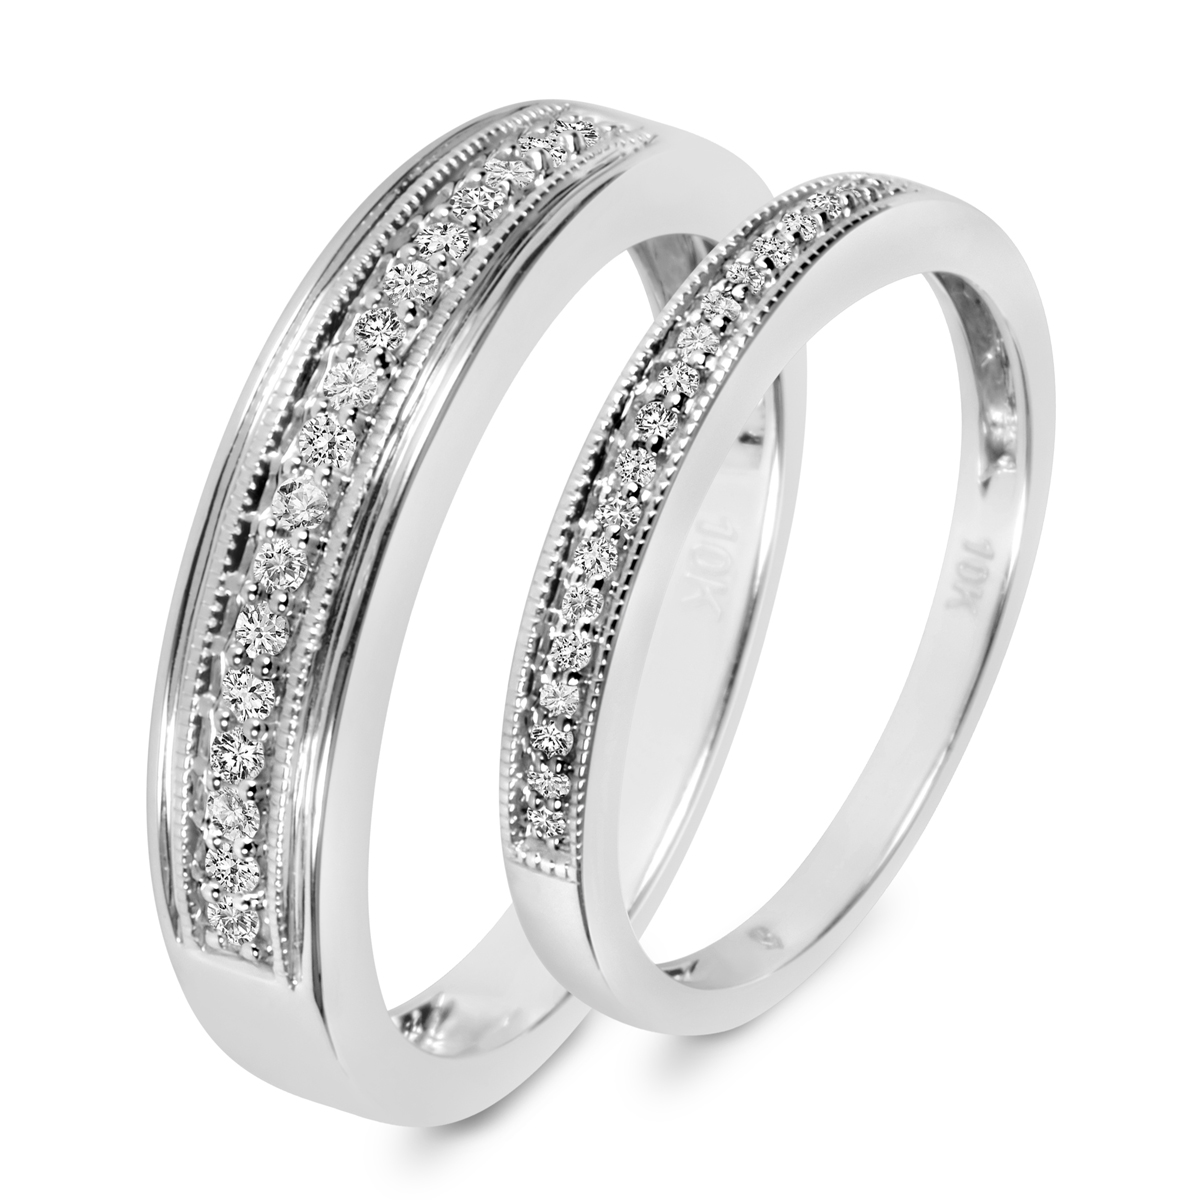 T W Diamond His And Hers Wedding Band Set 10k White Gold My Trio Rings Wb529w10k